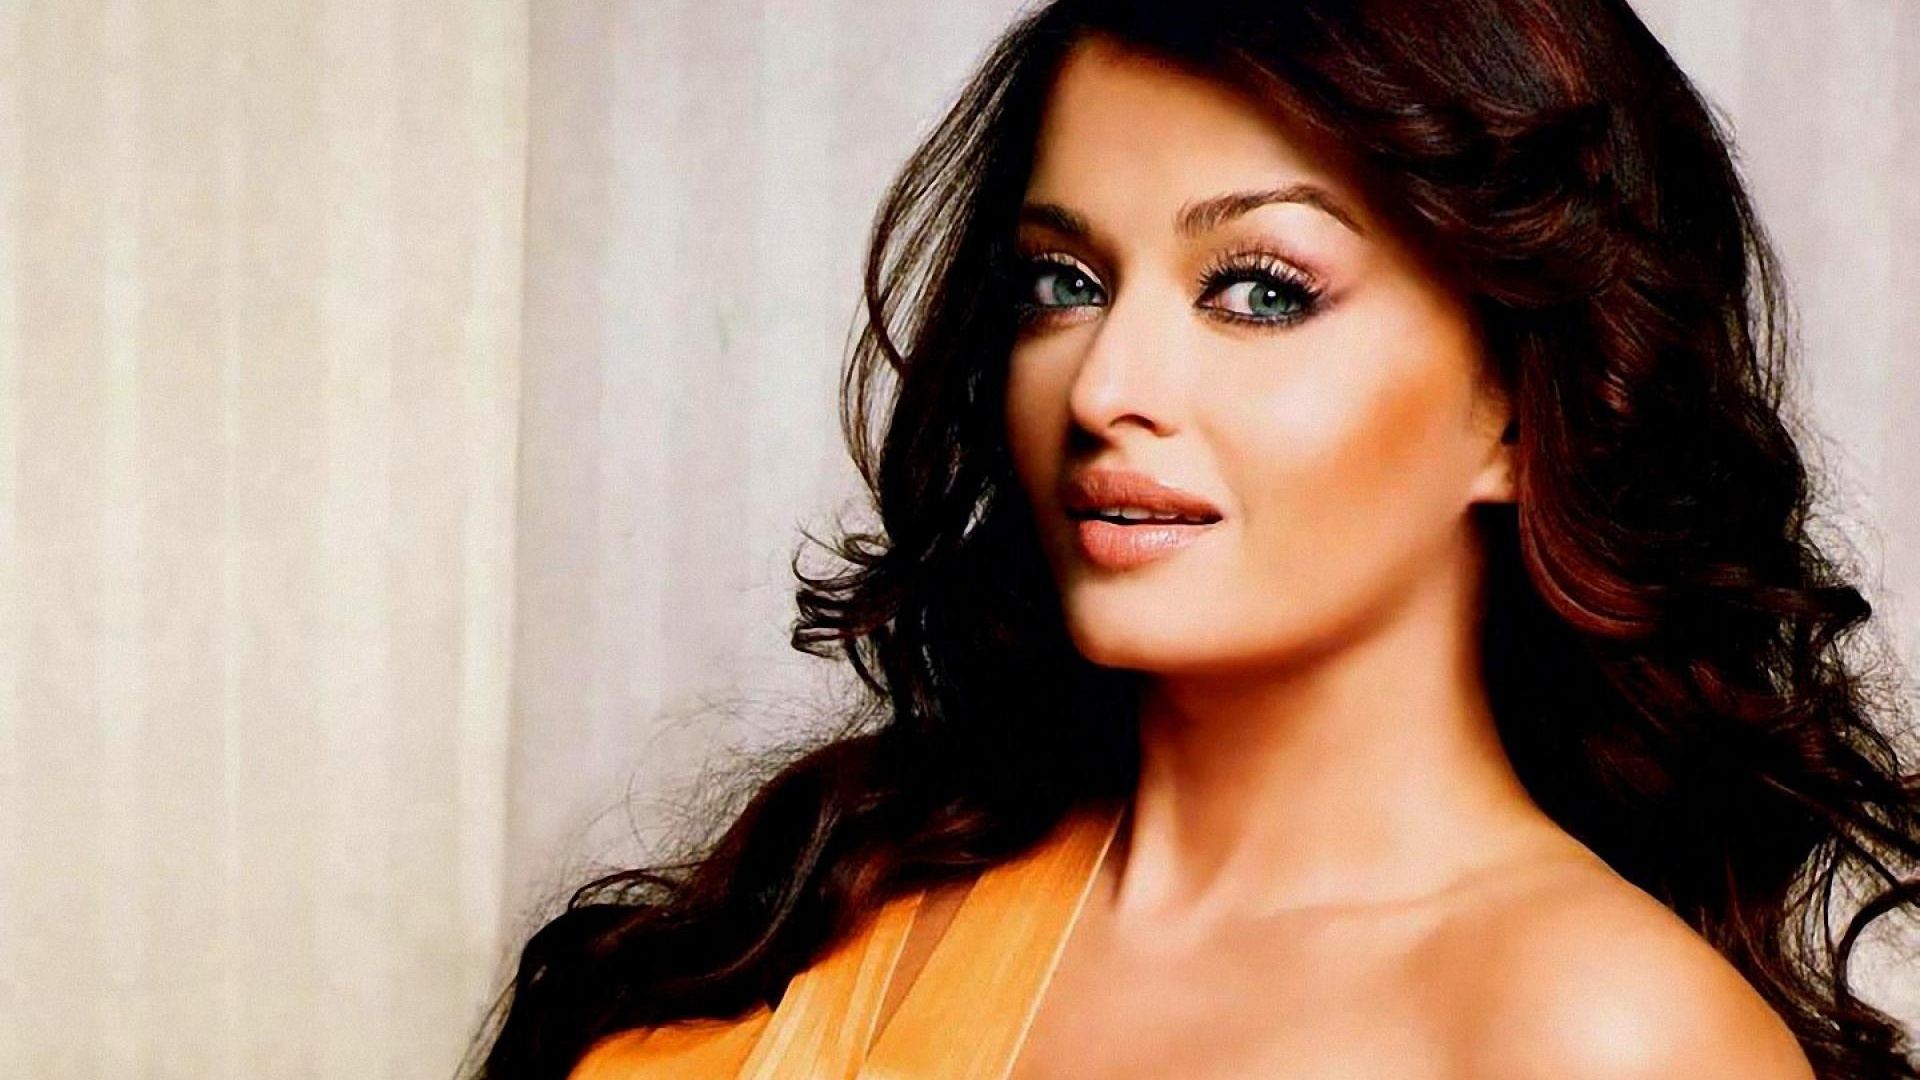 Aishwarya Rai Hot Desktop And Mac Wallpaper